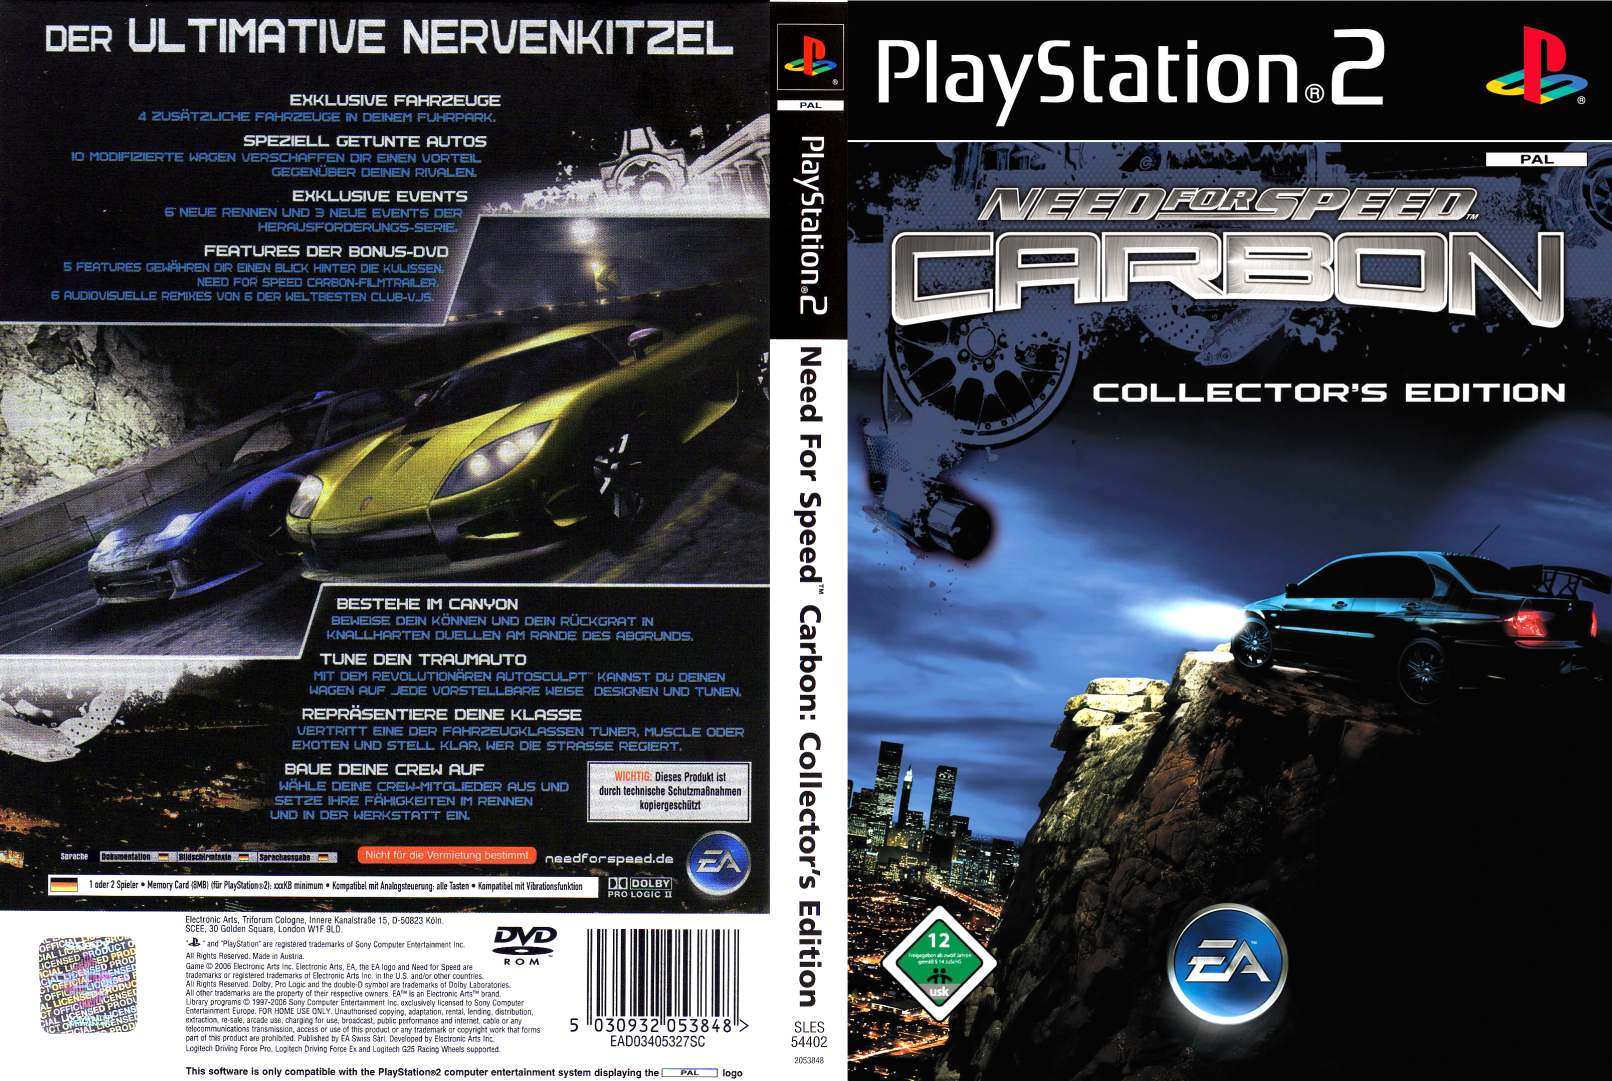 Need For Speed Carbon Collectors Edition D Playstation 2 Covers